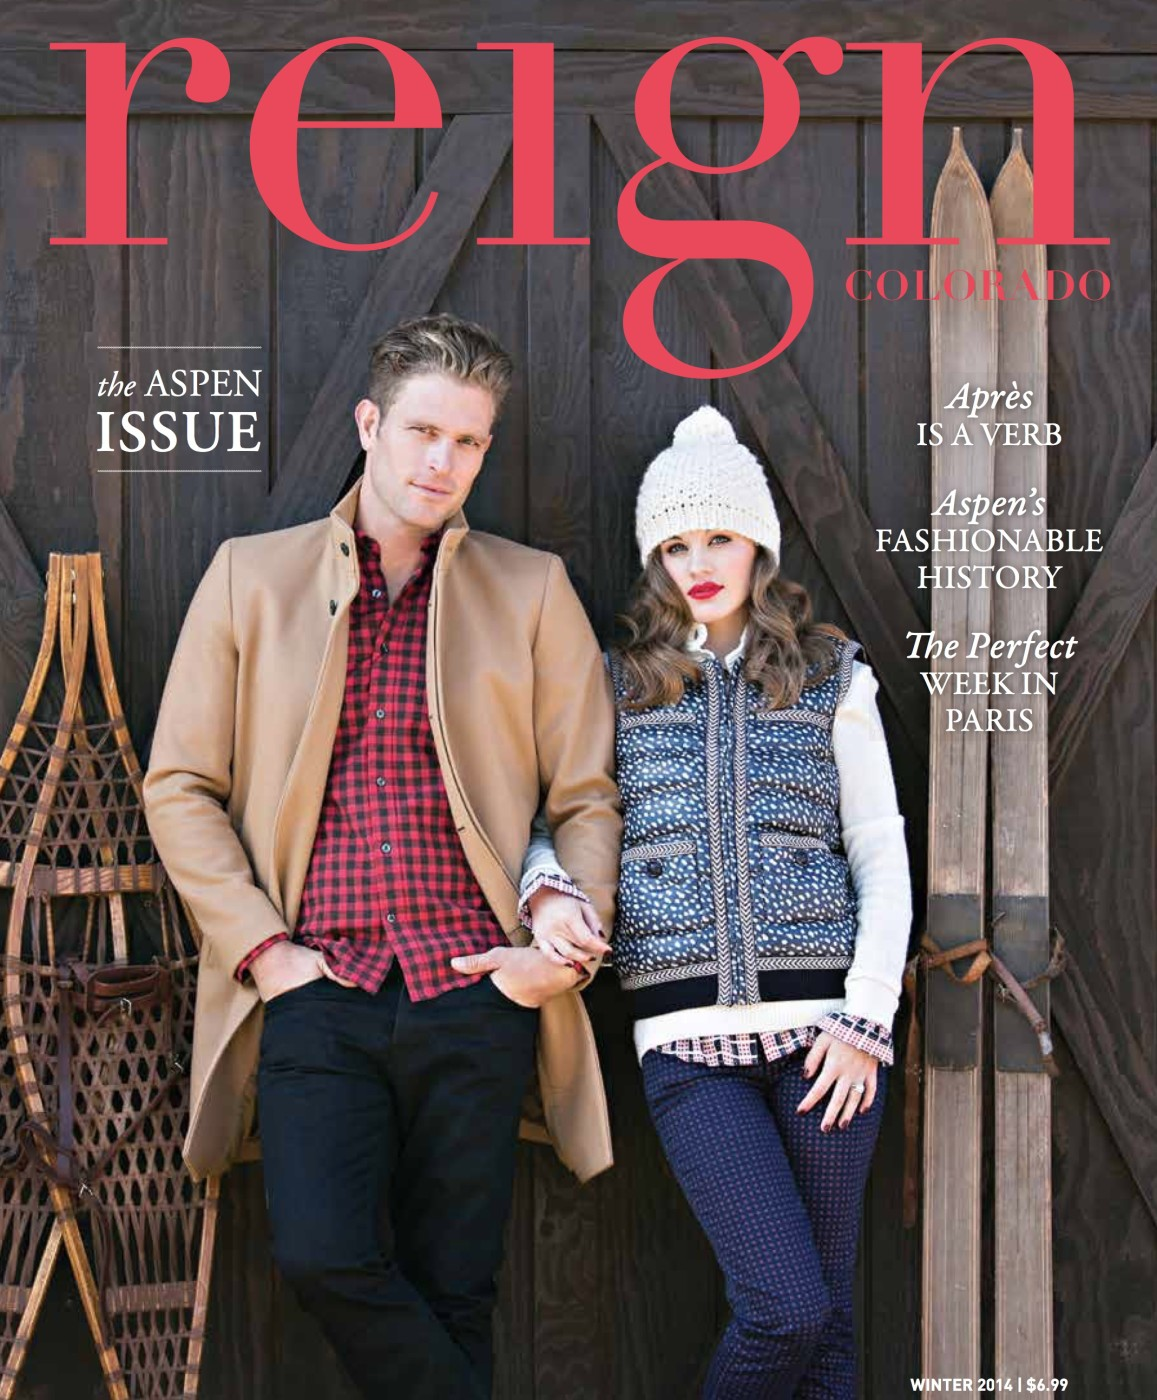 Colorado Wedding Company published in Reign